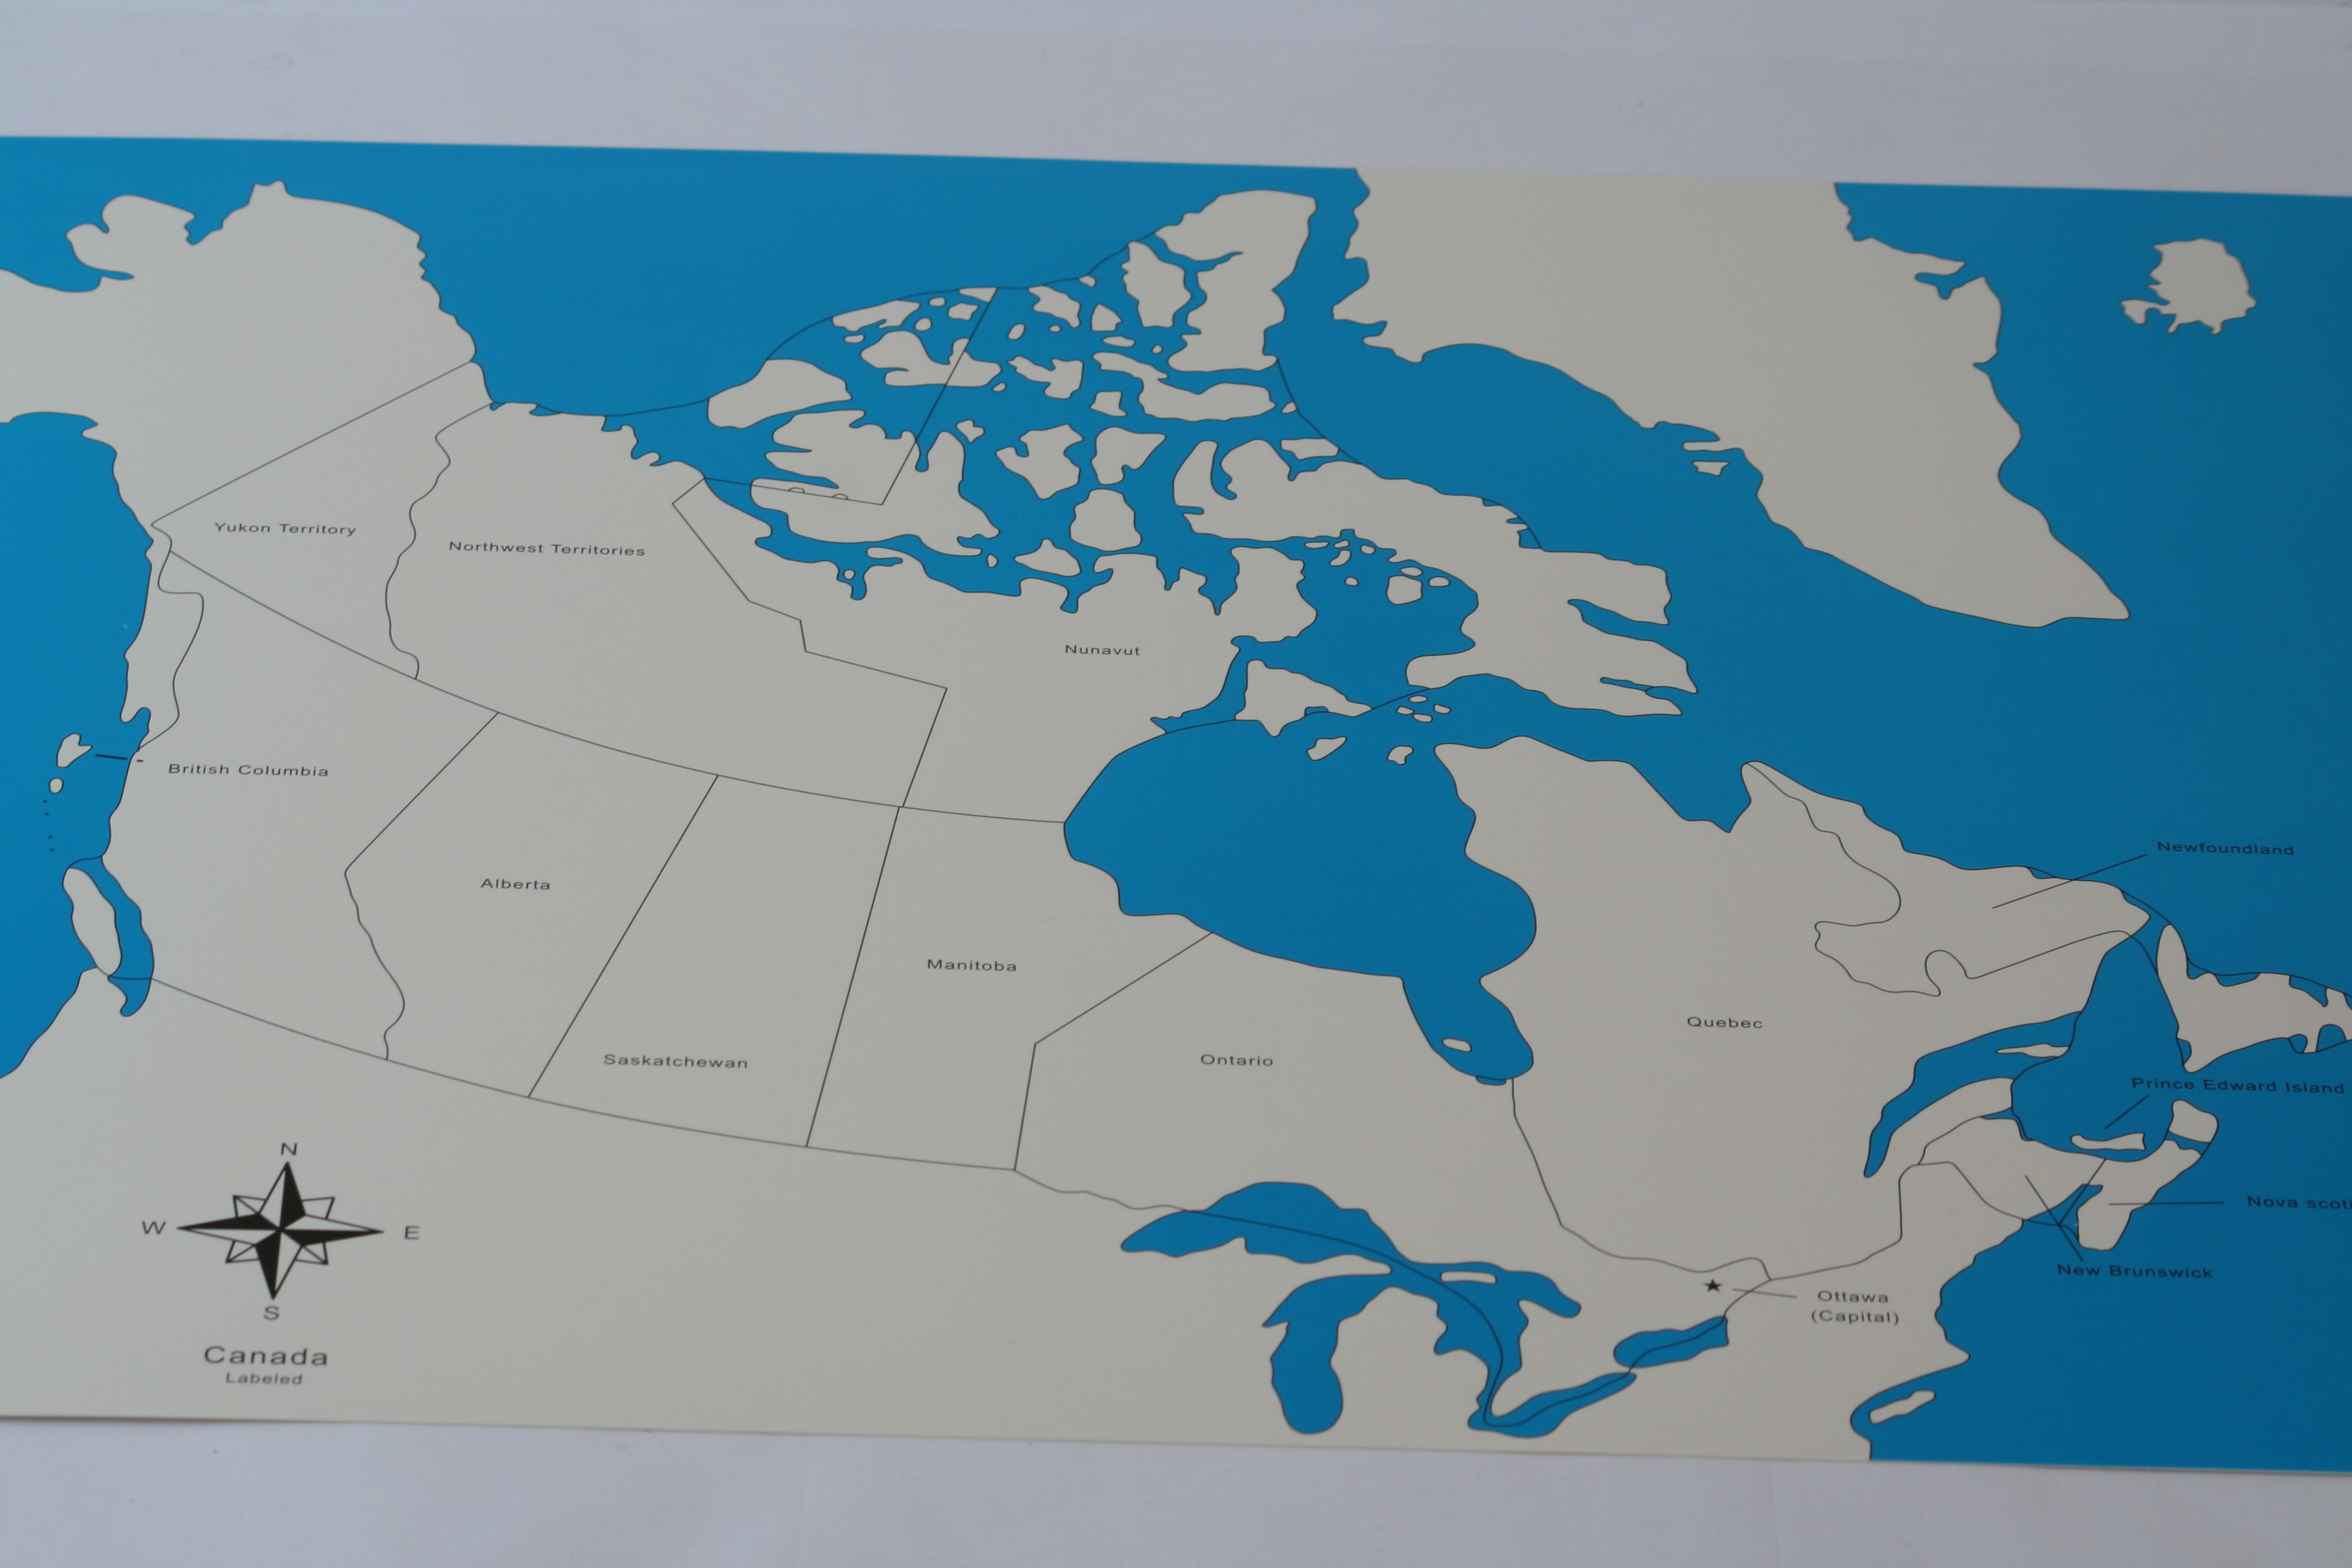 Map Of Canada Unlabelled.2 Control Maps Of Canada Labelled Unlabelled